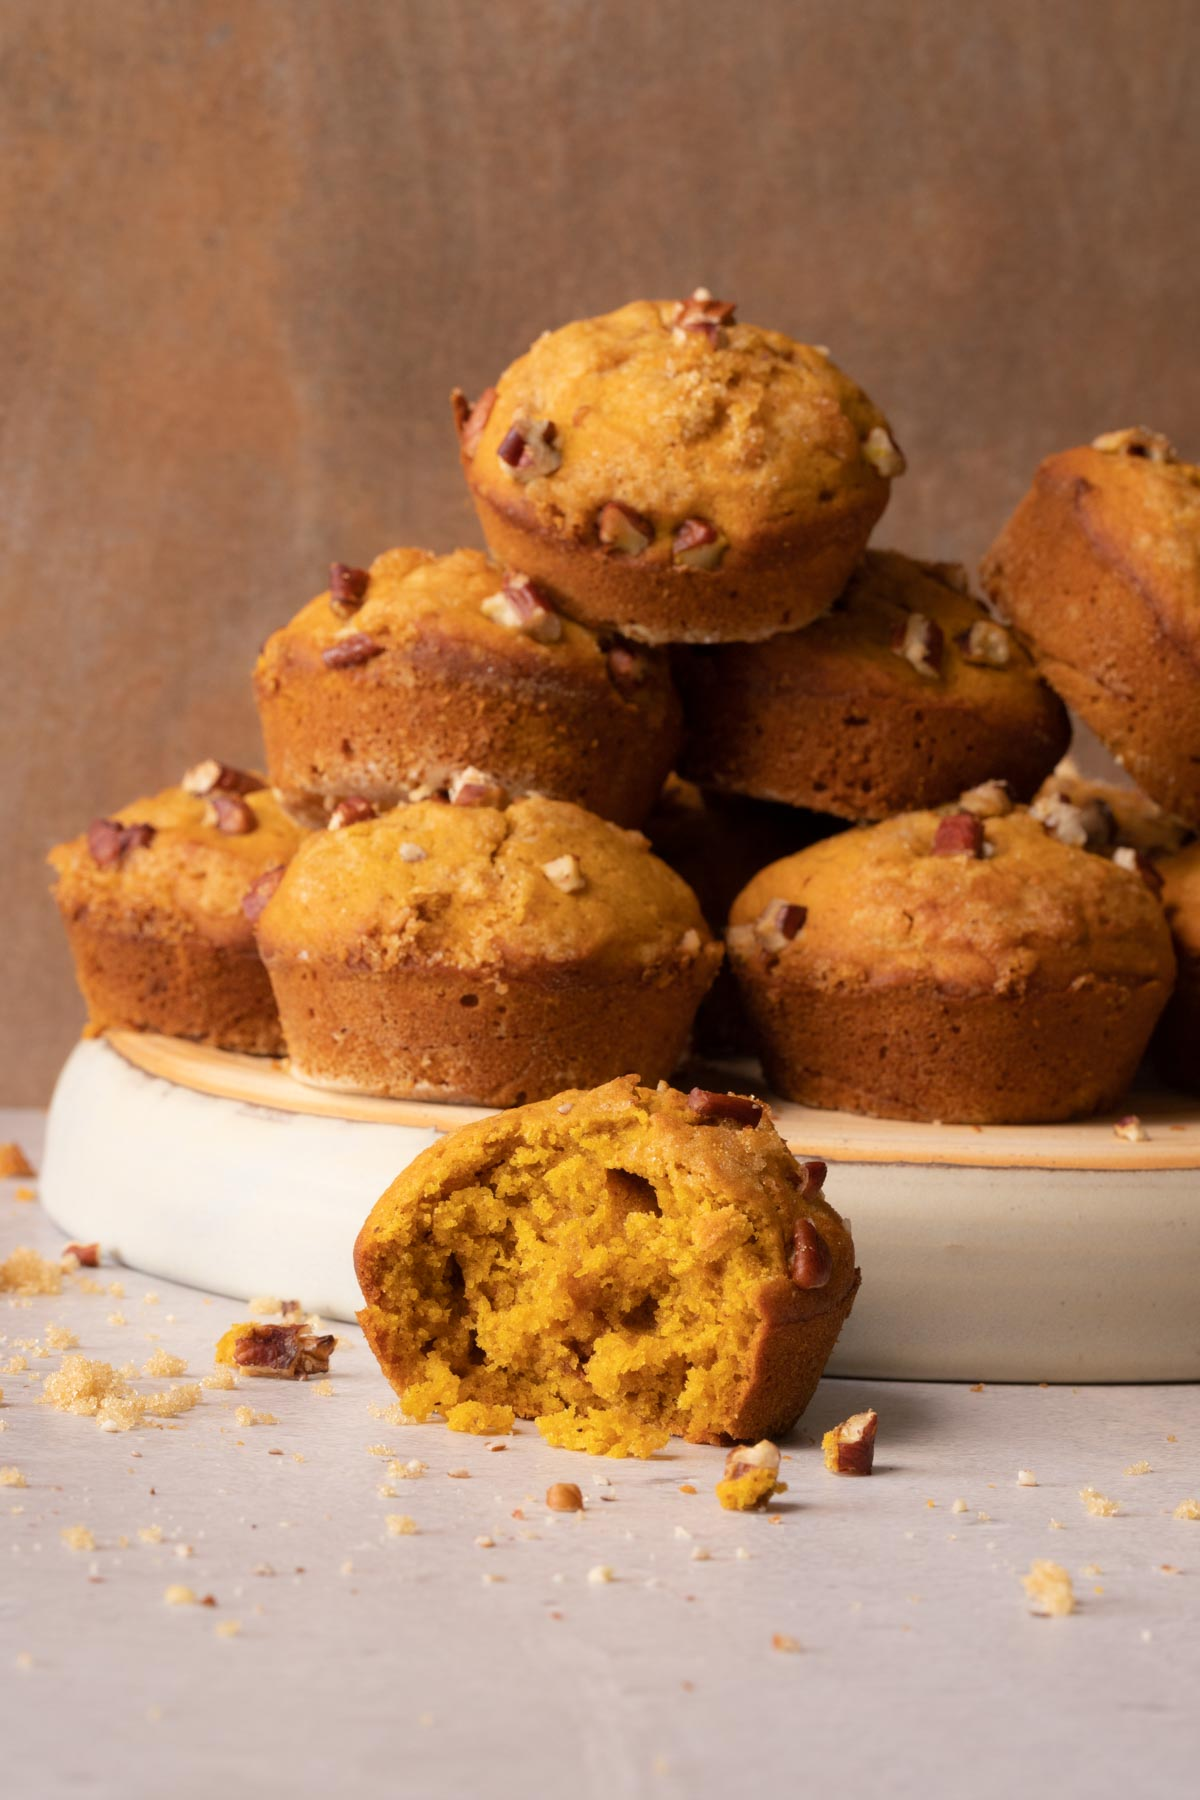 Pumpkin muffins stacked on a plate